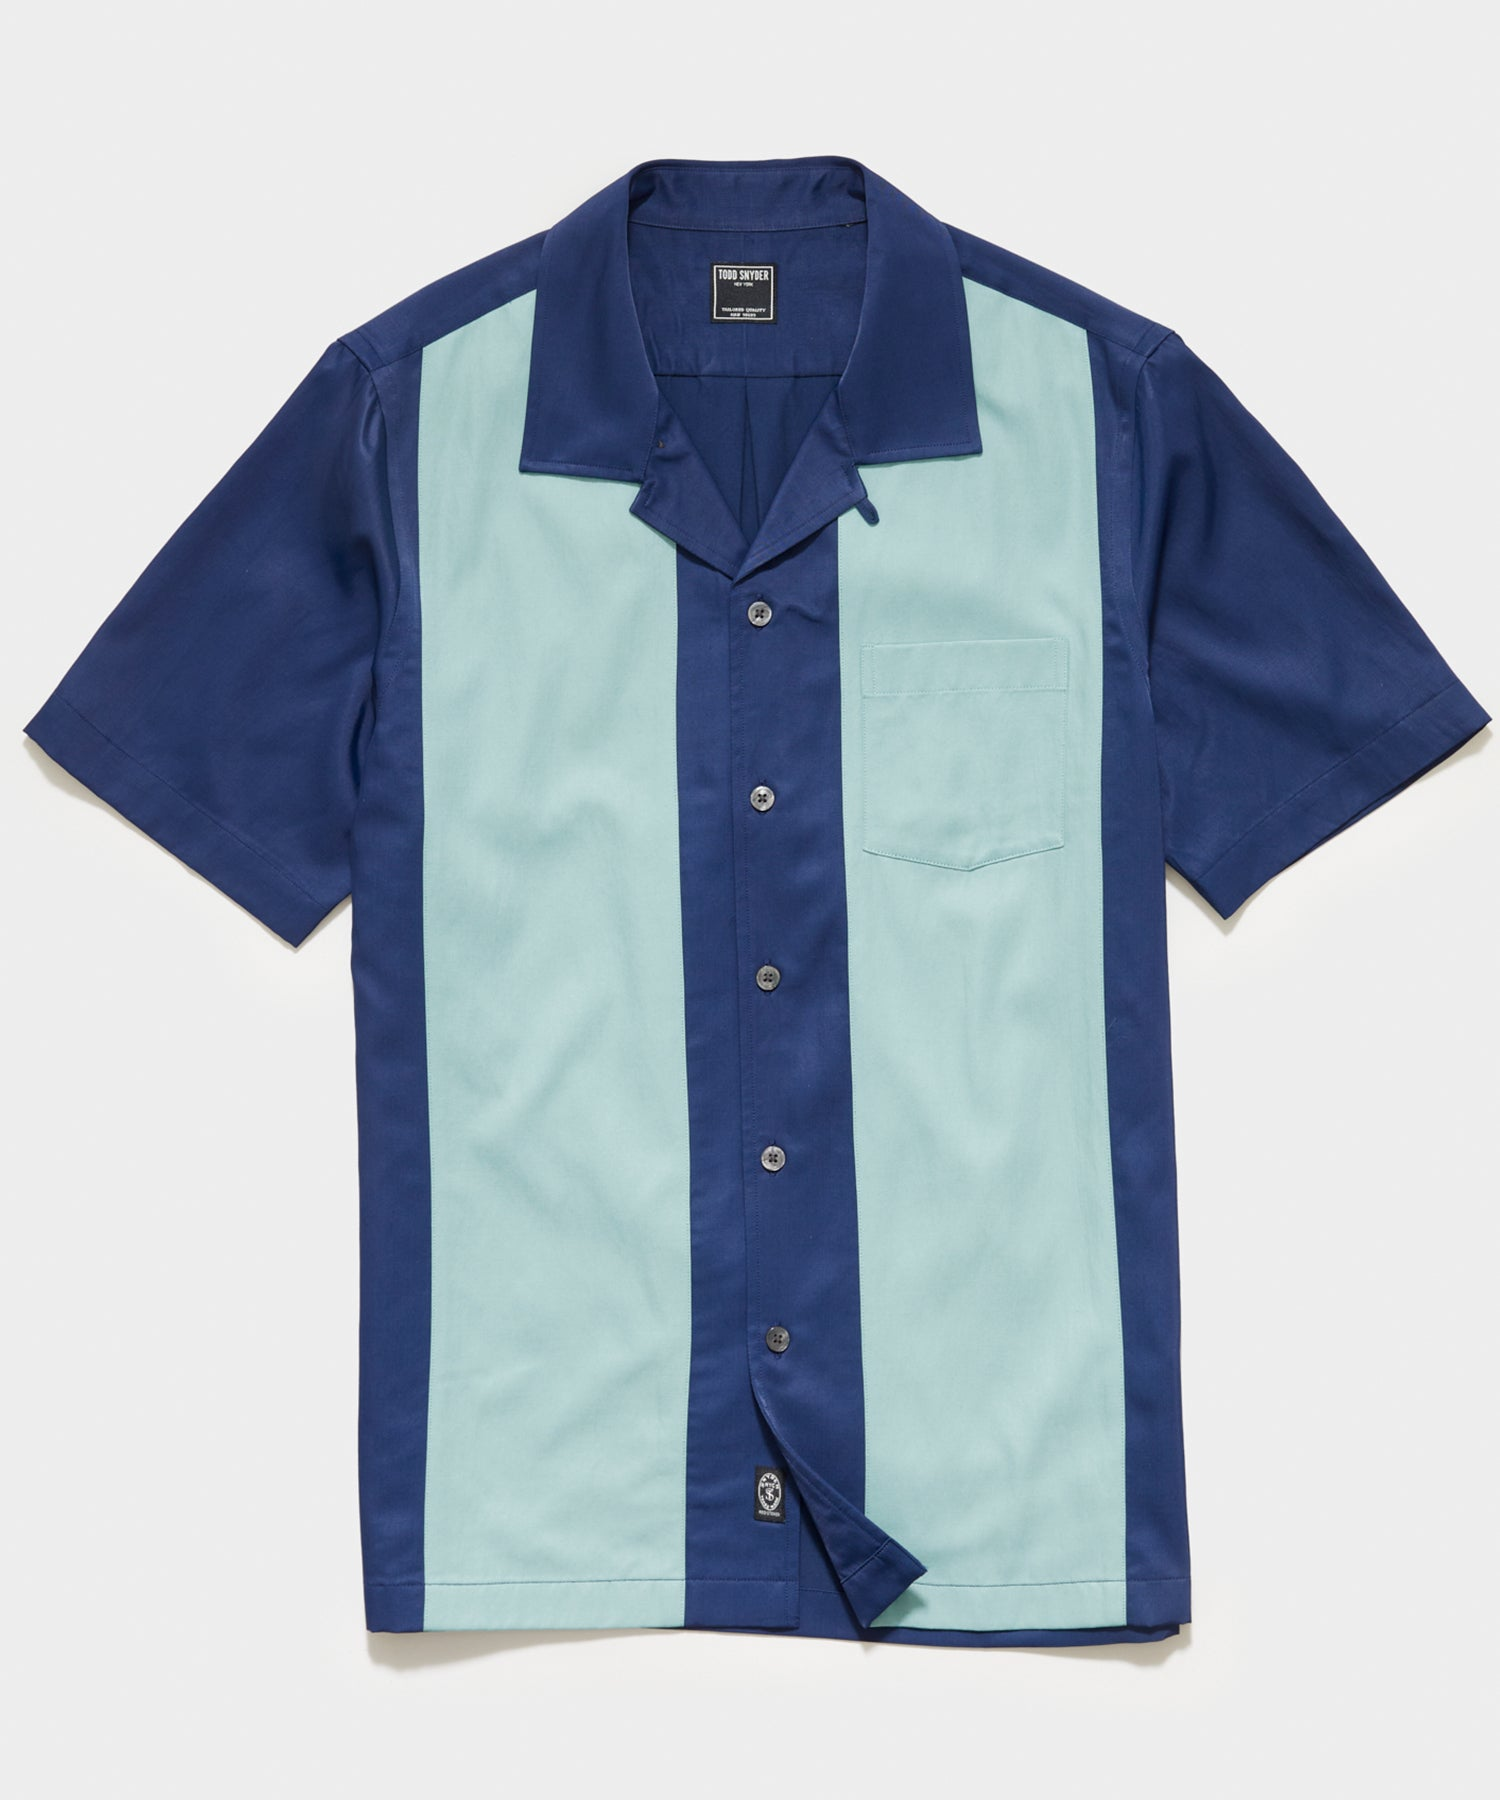 Japanese Lane Shirt in Navy